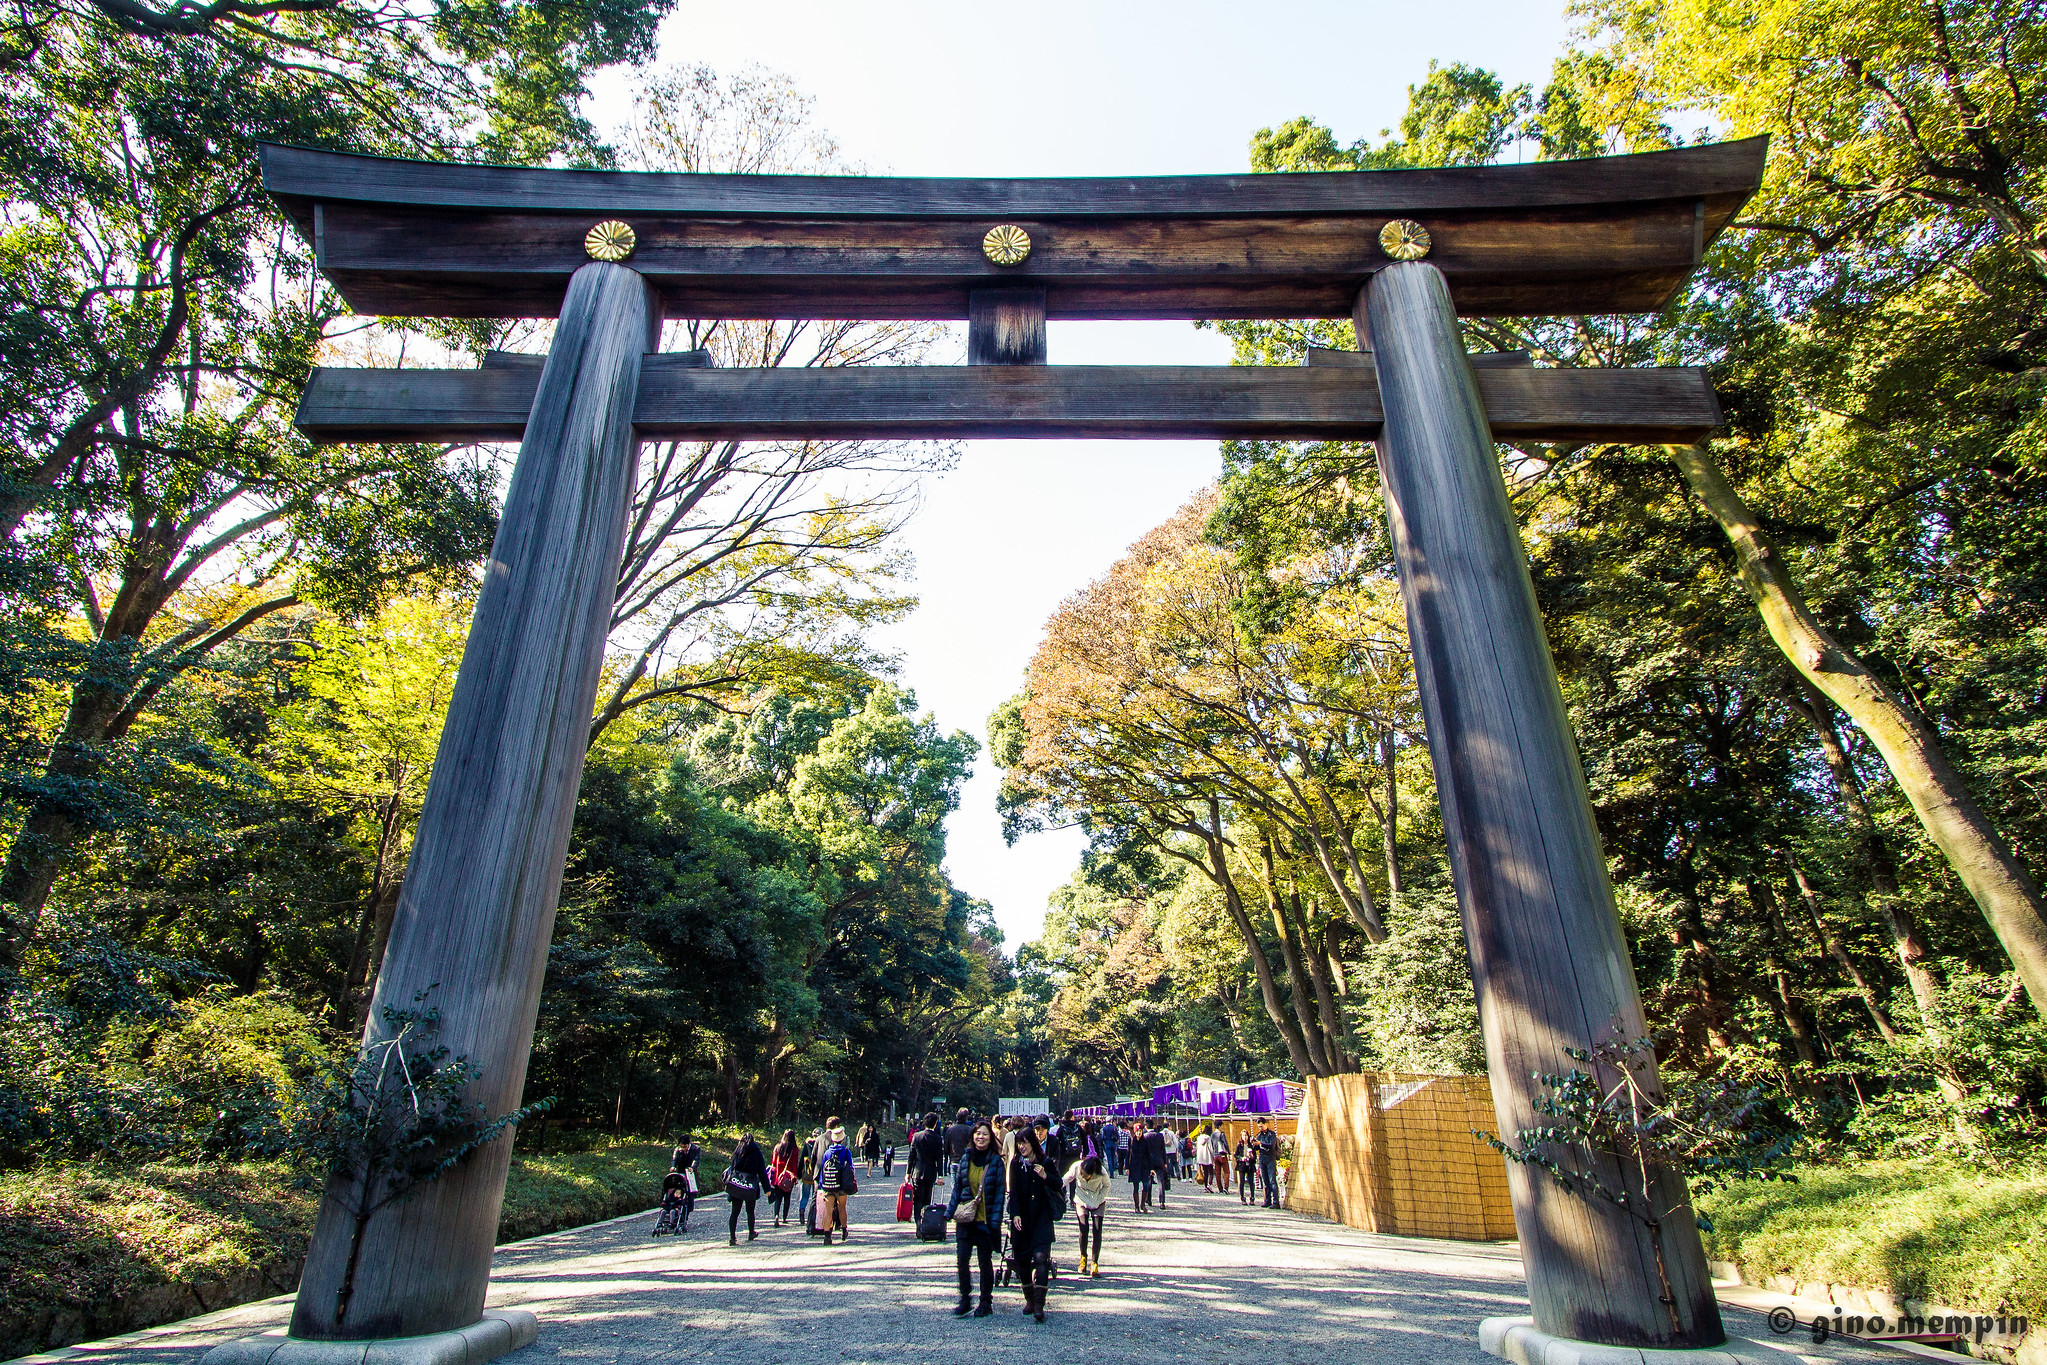 Checking out Japan's shrines and temples is a cool thing to do in Tokyo